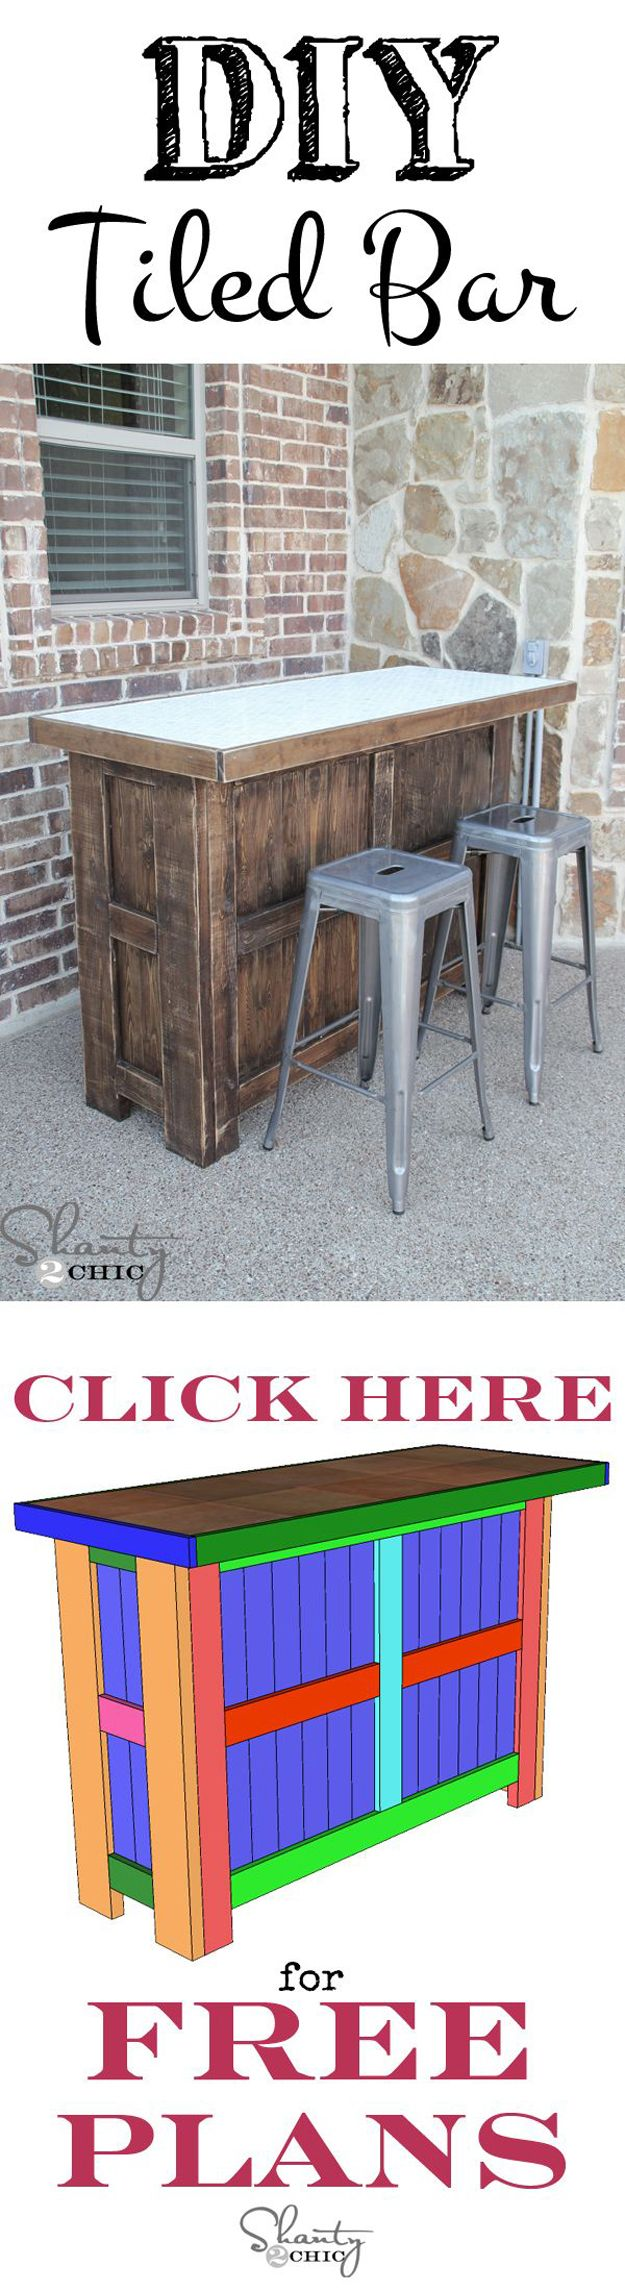 DIY Outdoor Bar Ideas: Tiled Bar | Homemade Backyard Furniture Ideas by DIY Ready at diyready.com/diy-projects-backyard-furniture/